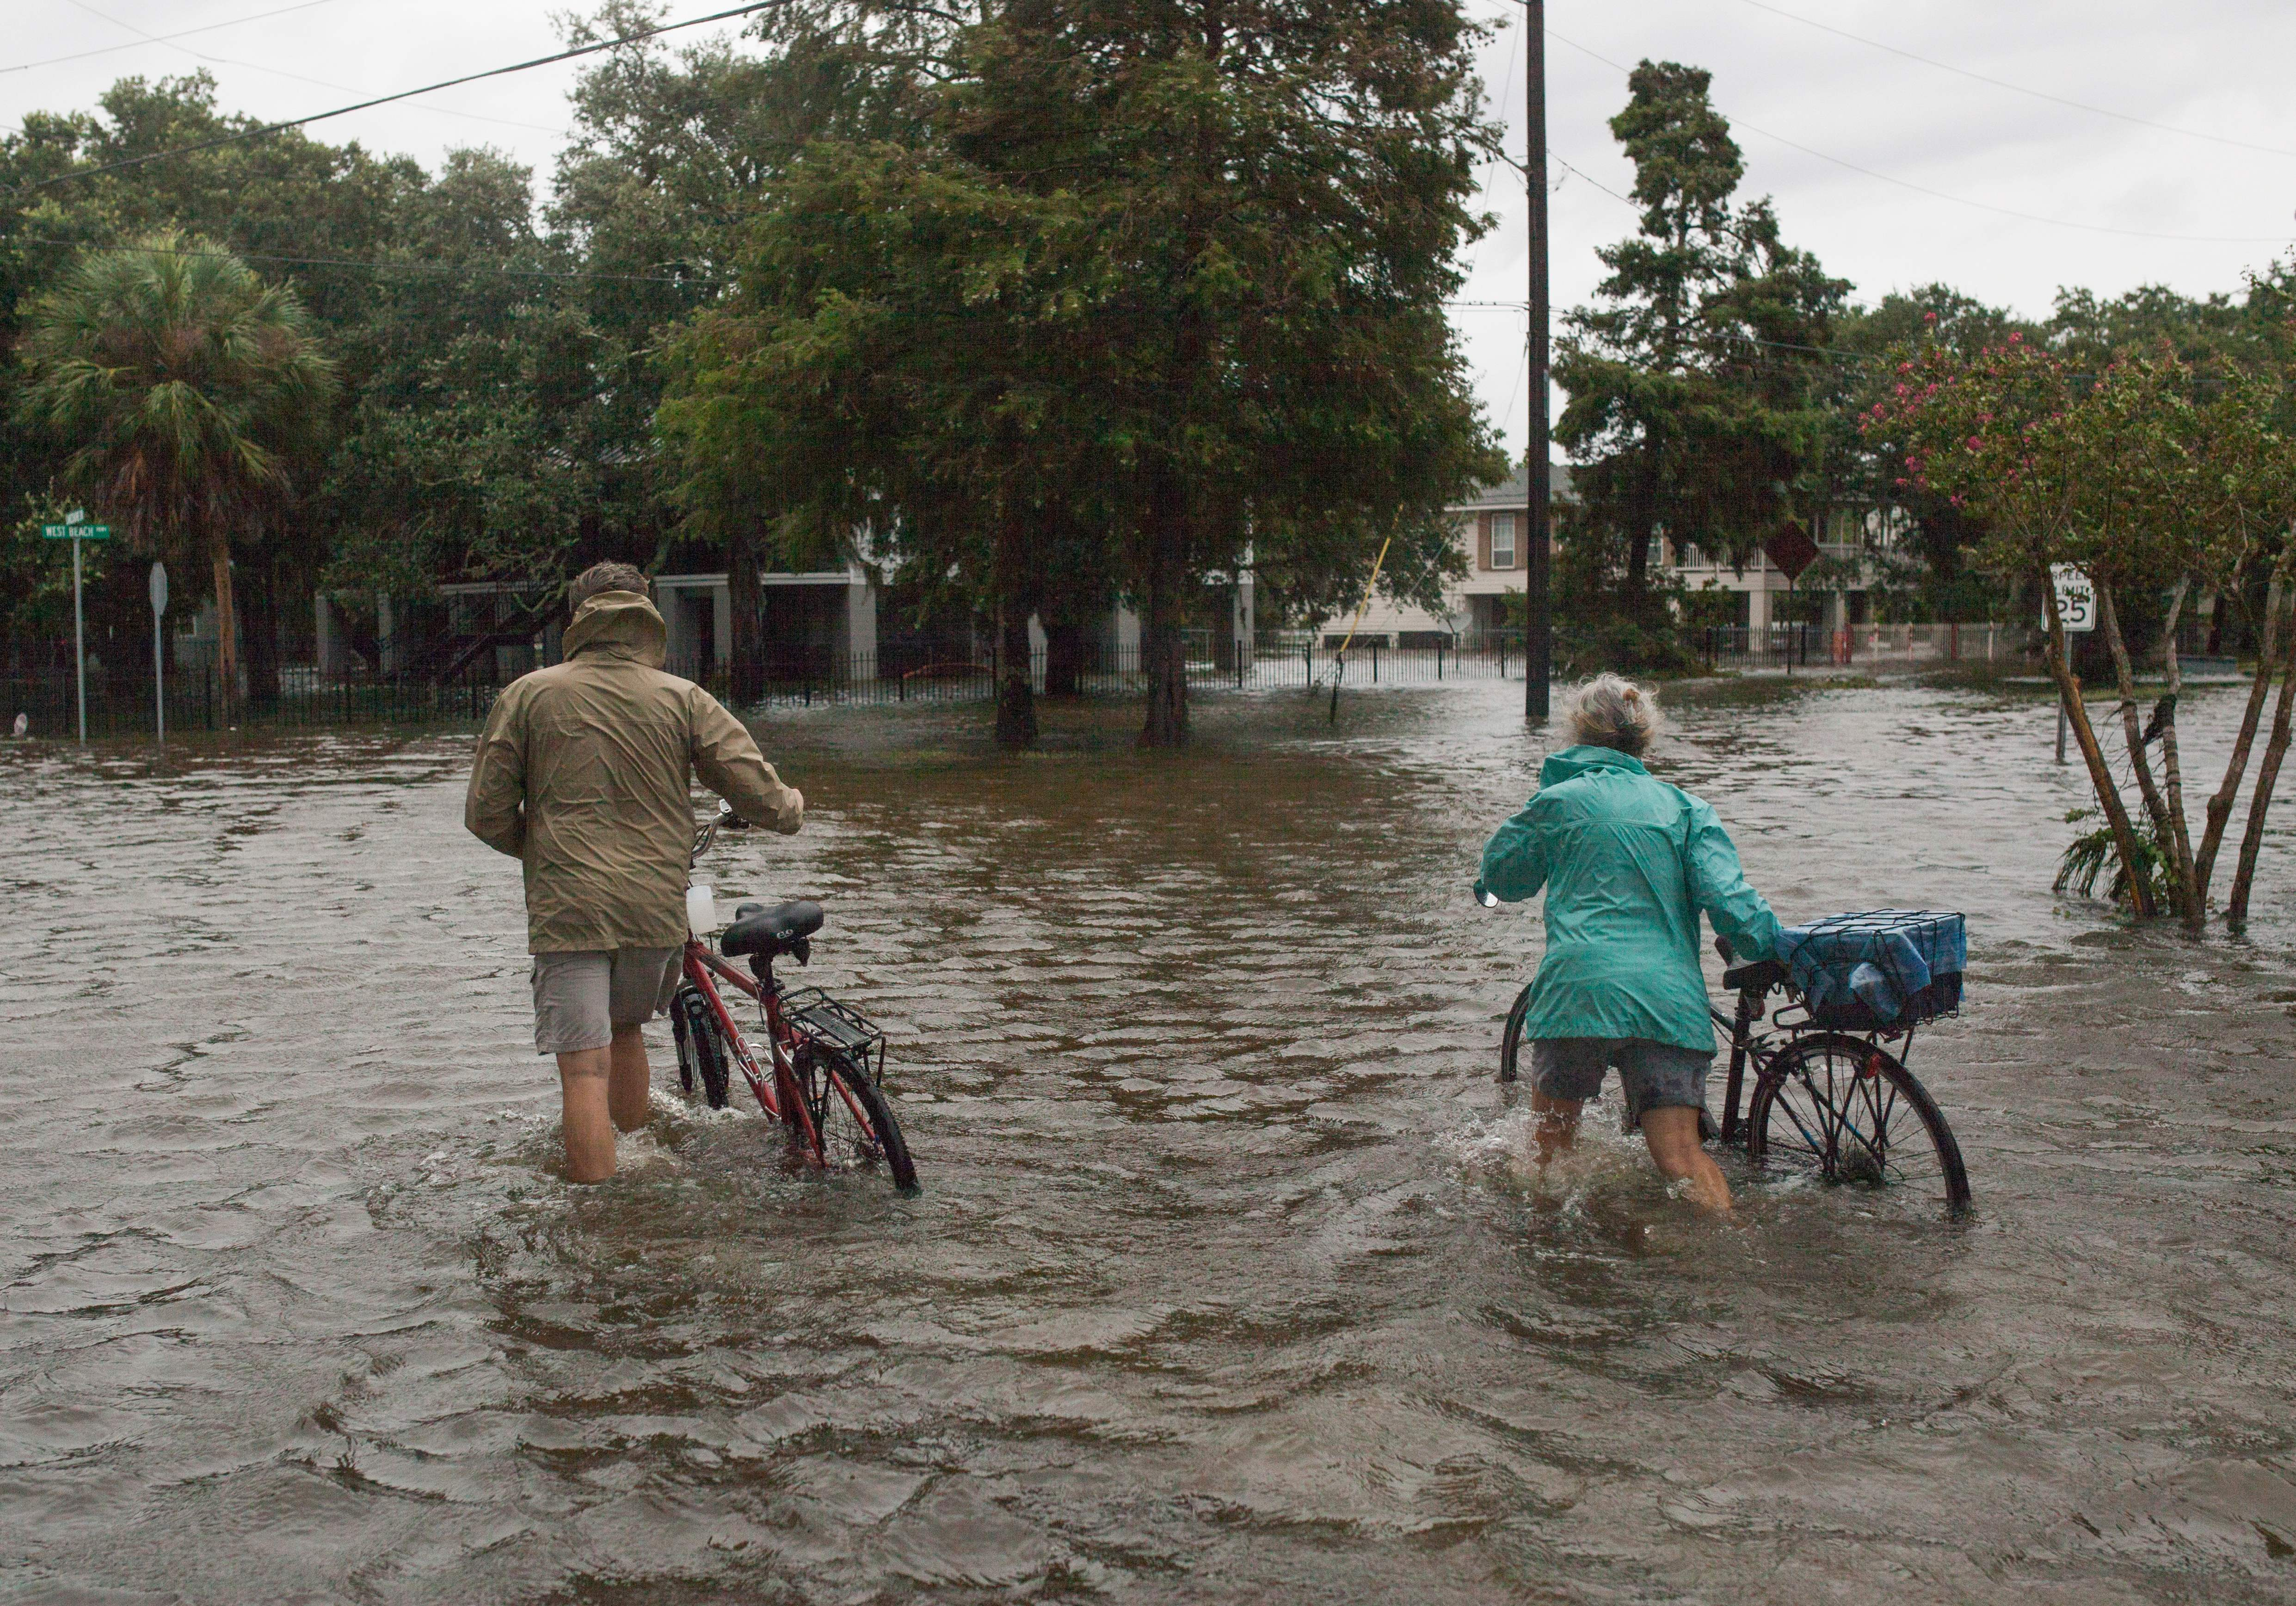 A couple walks their bikes through a flooded street after Tropical Storm Barry came ashore in Mandeville, Louisiana on July 14, 2019.